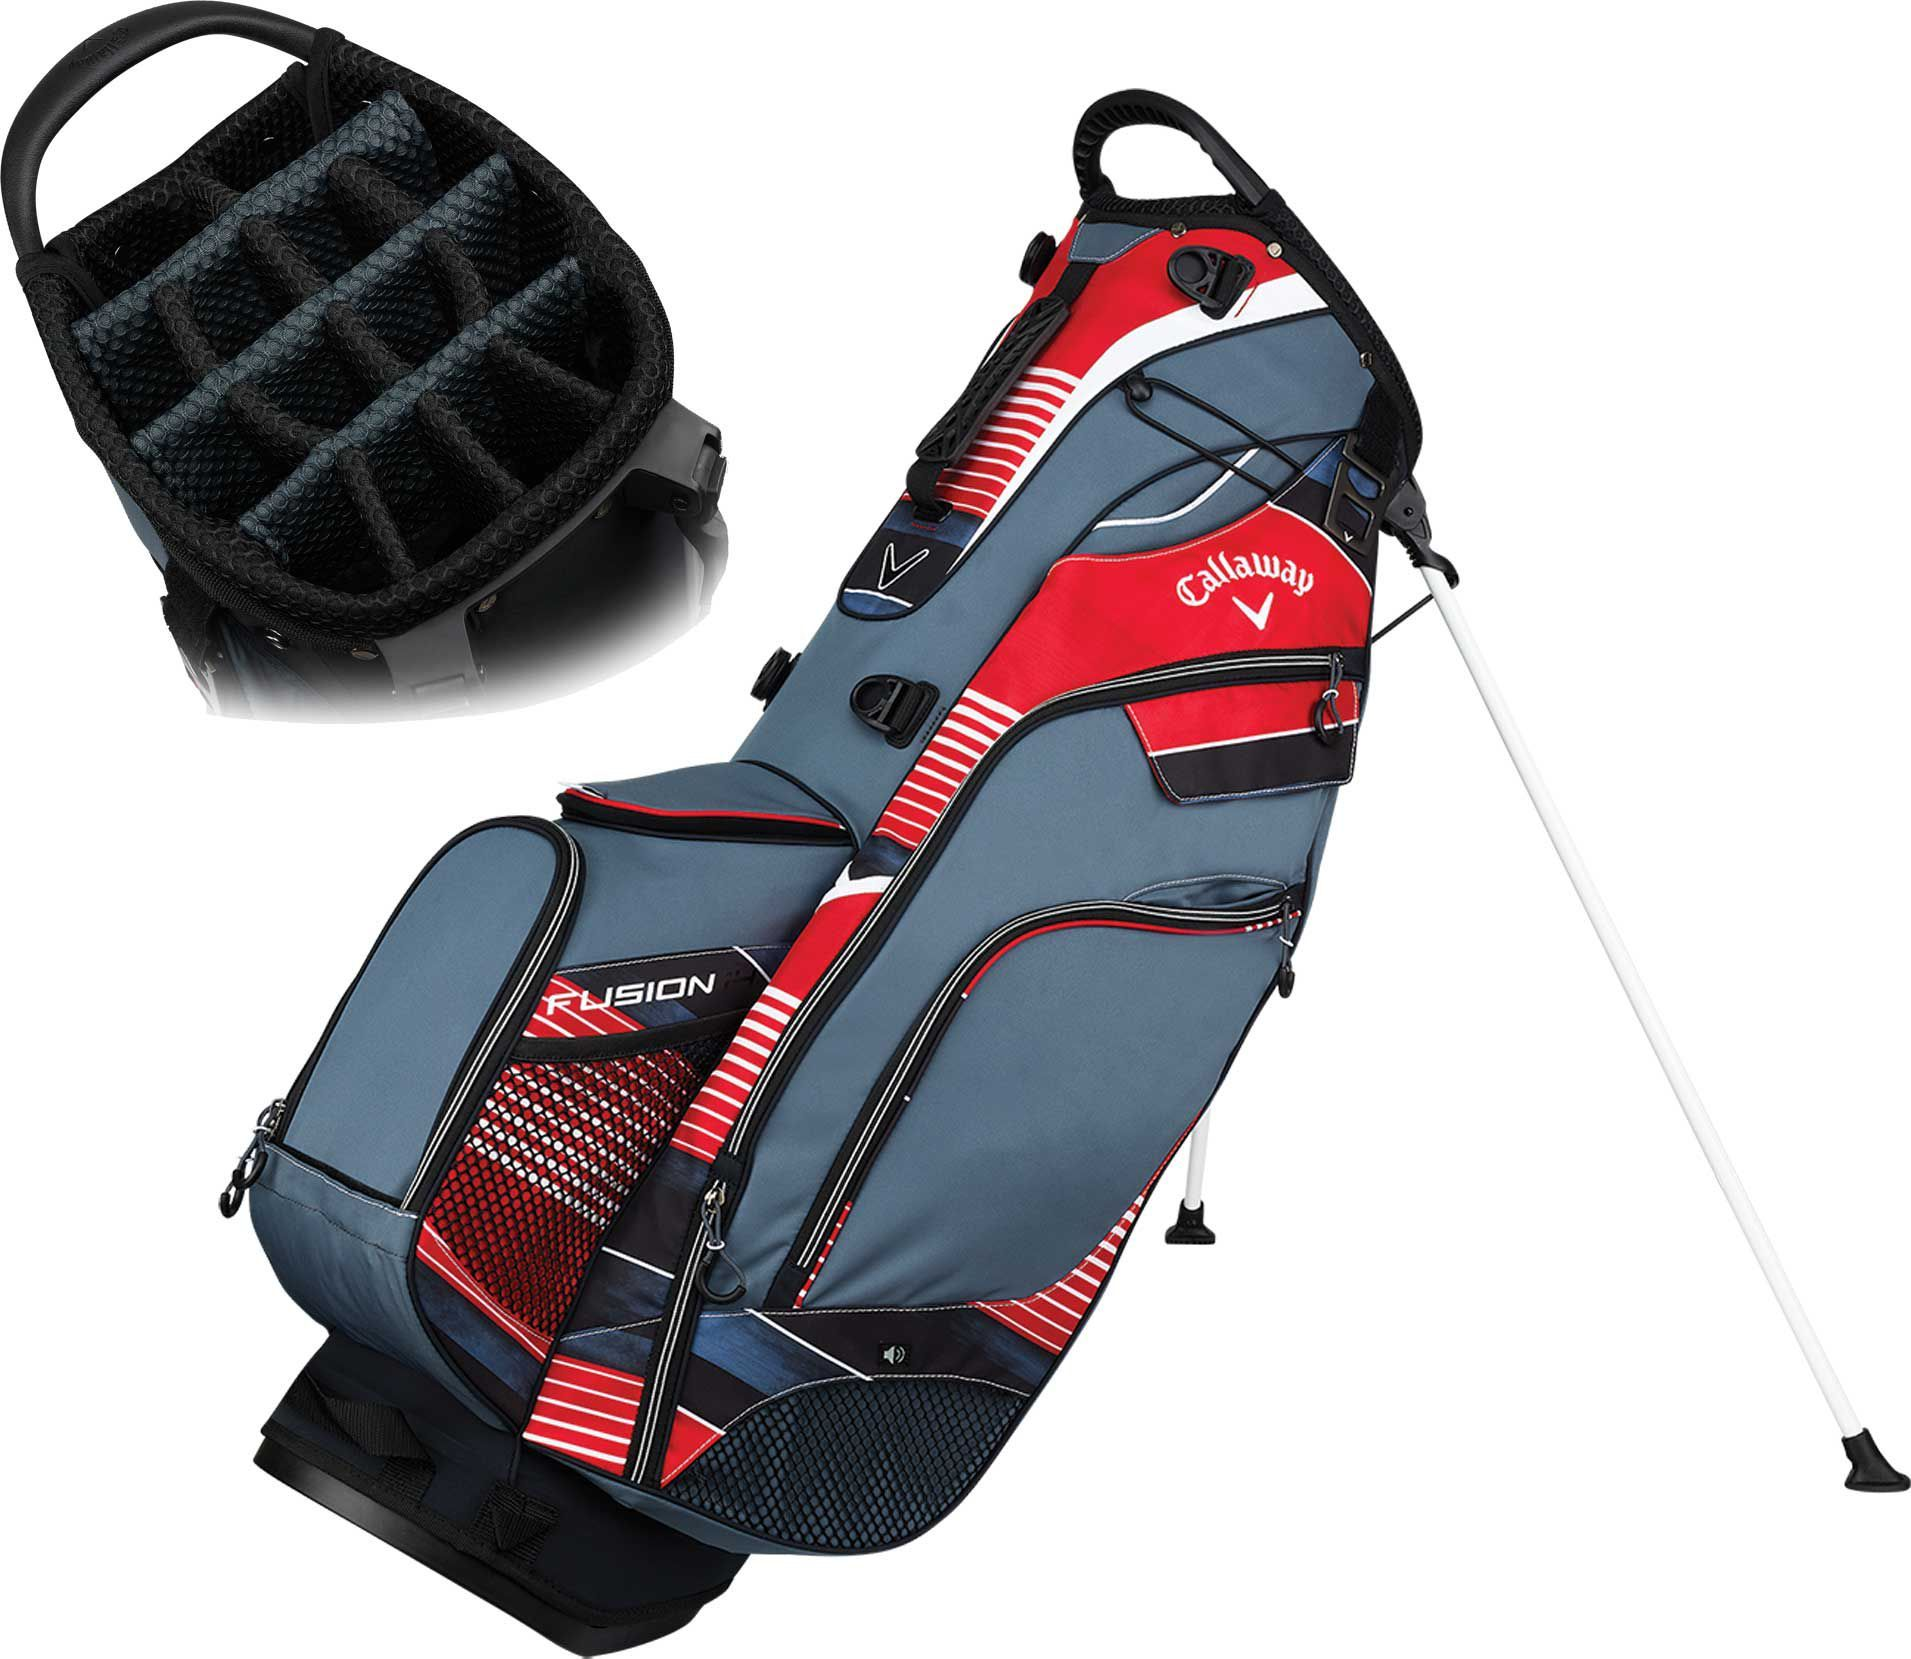 new lower prices great look aliexpress Callaway 2018 Fusion 14 Stand Golf Bag | Golf bags, Golf bags for ...